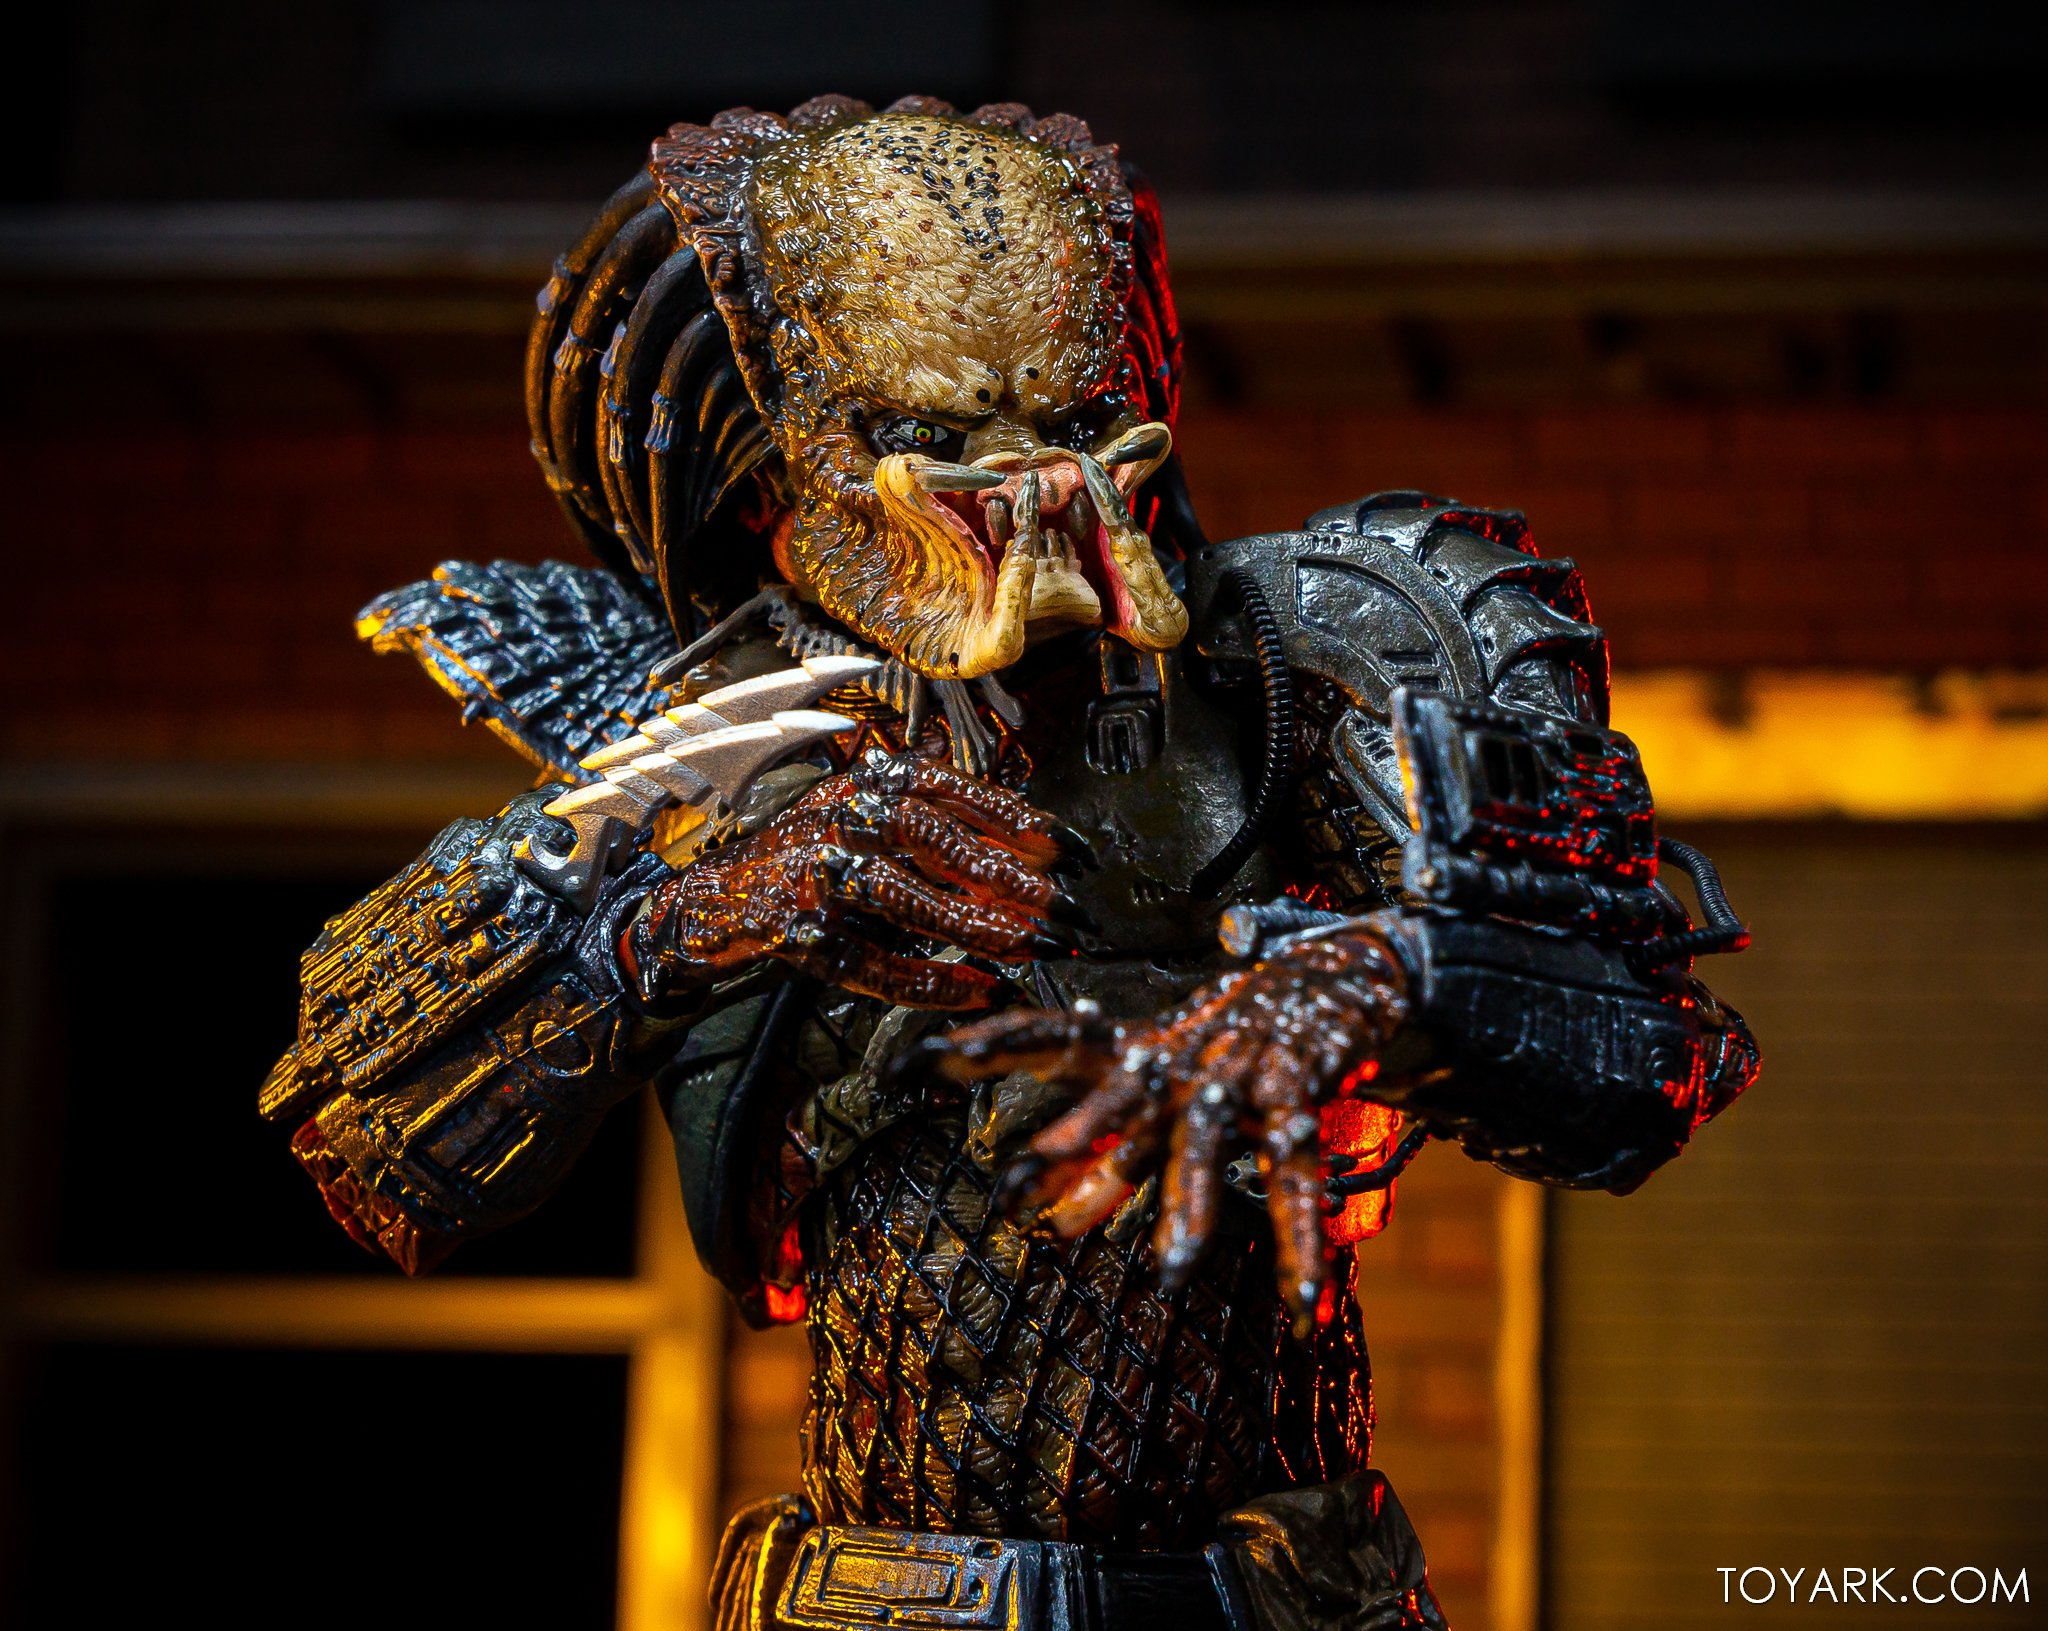 https://news.toyark.com/wp-content/uploads/sites/4/2019/09/Batman-vs-Predator-Set-037.jpg